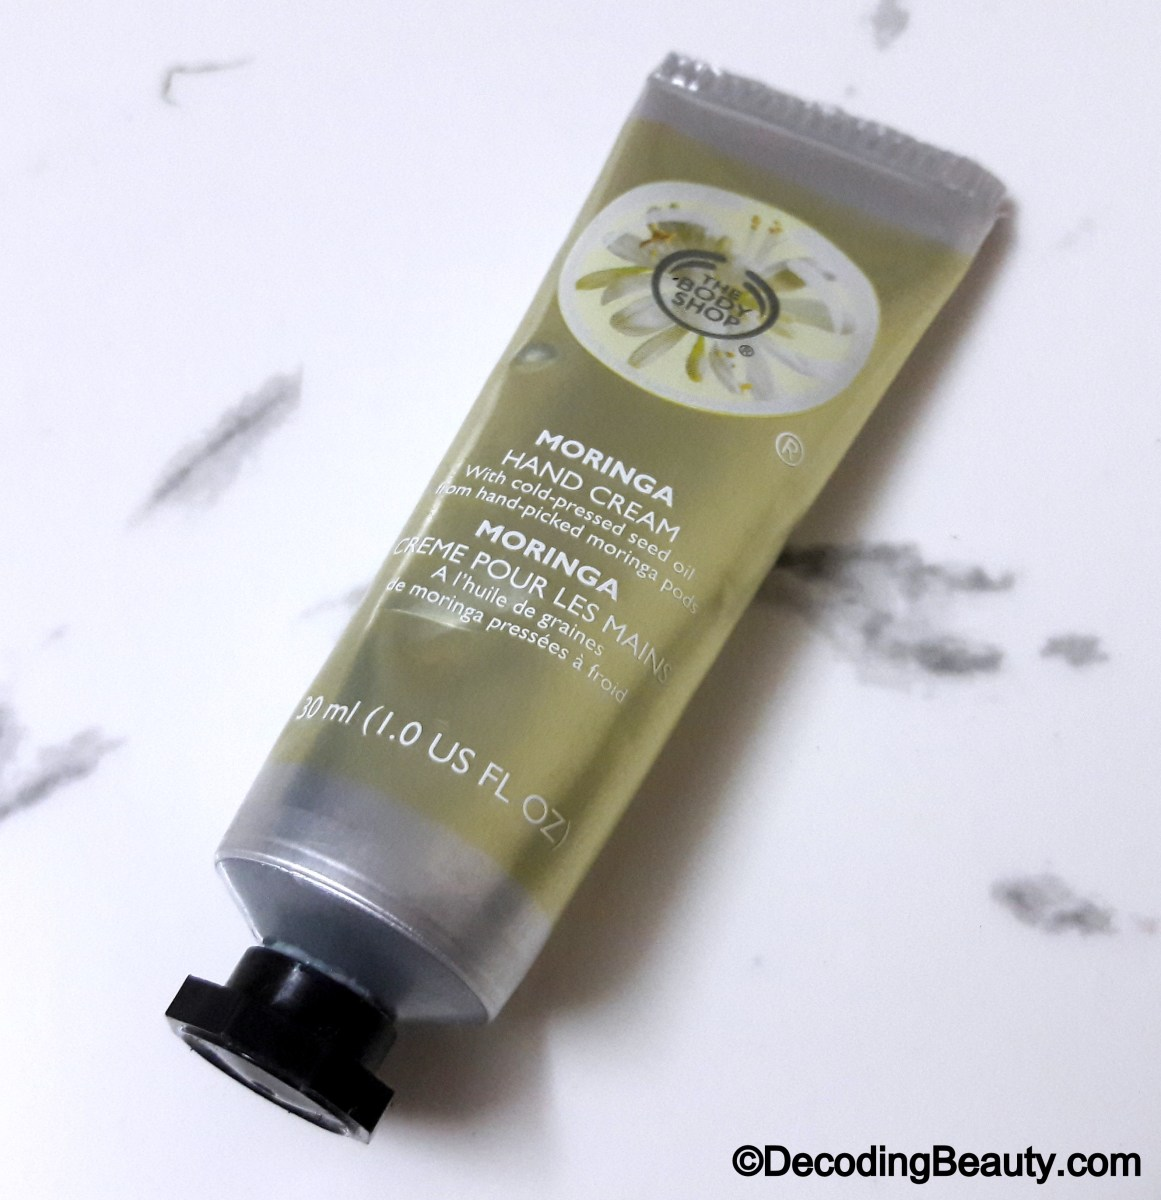 The Body Shop Moringa Hand Cream Review